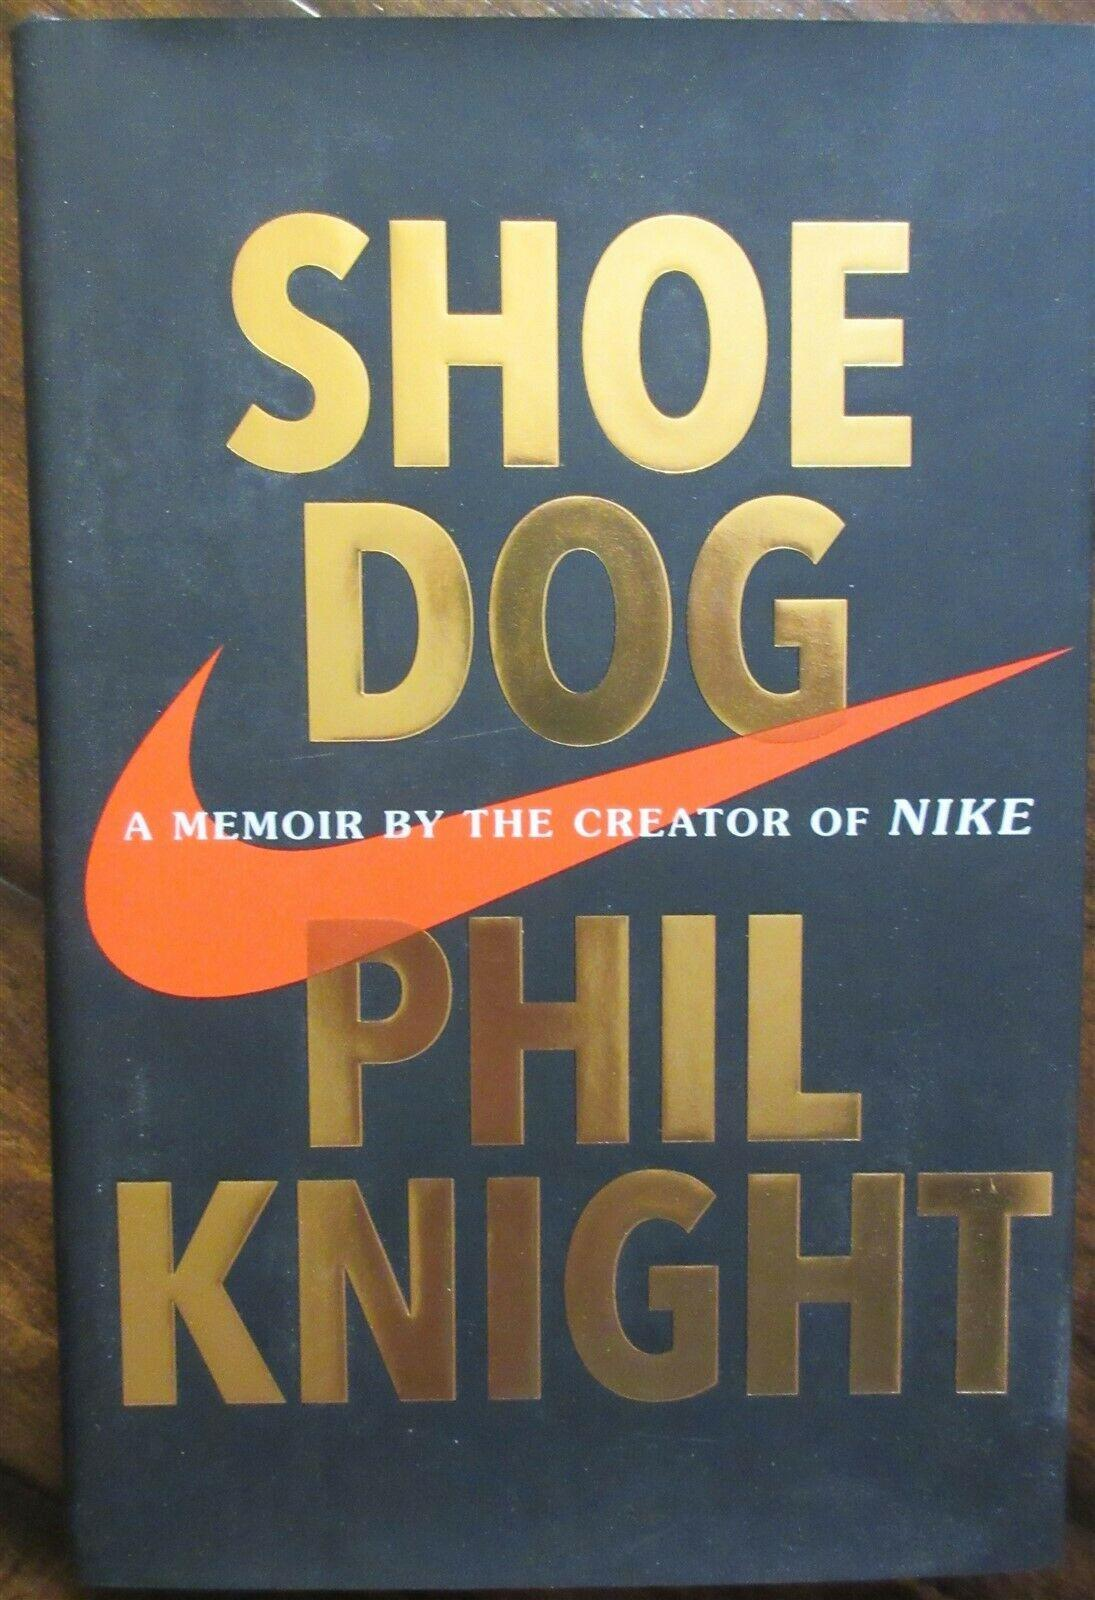 the managerial techniques of phil knight at nike With nike sneaker wealth estimated by forbes magazine to be $19 billion, phil knight and his wife, penny knight.